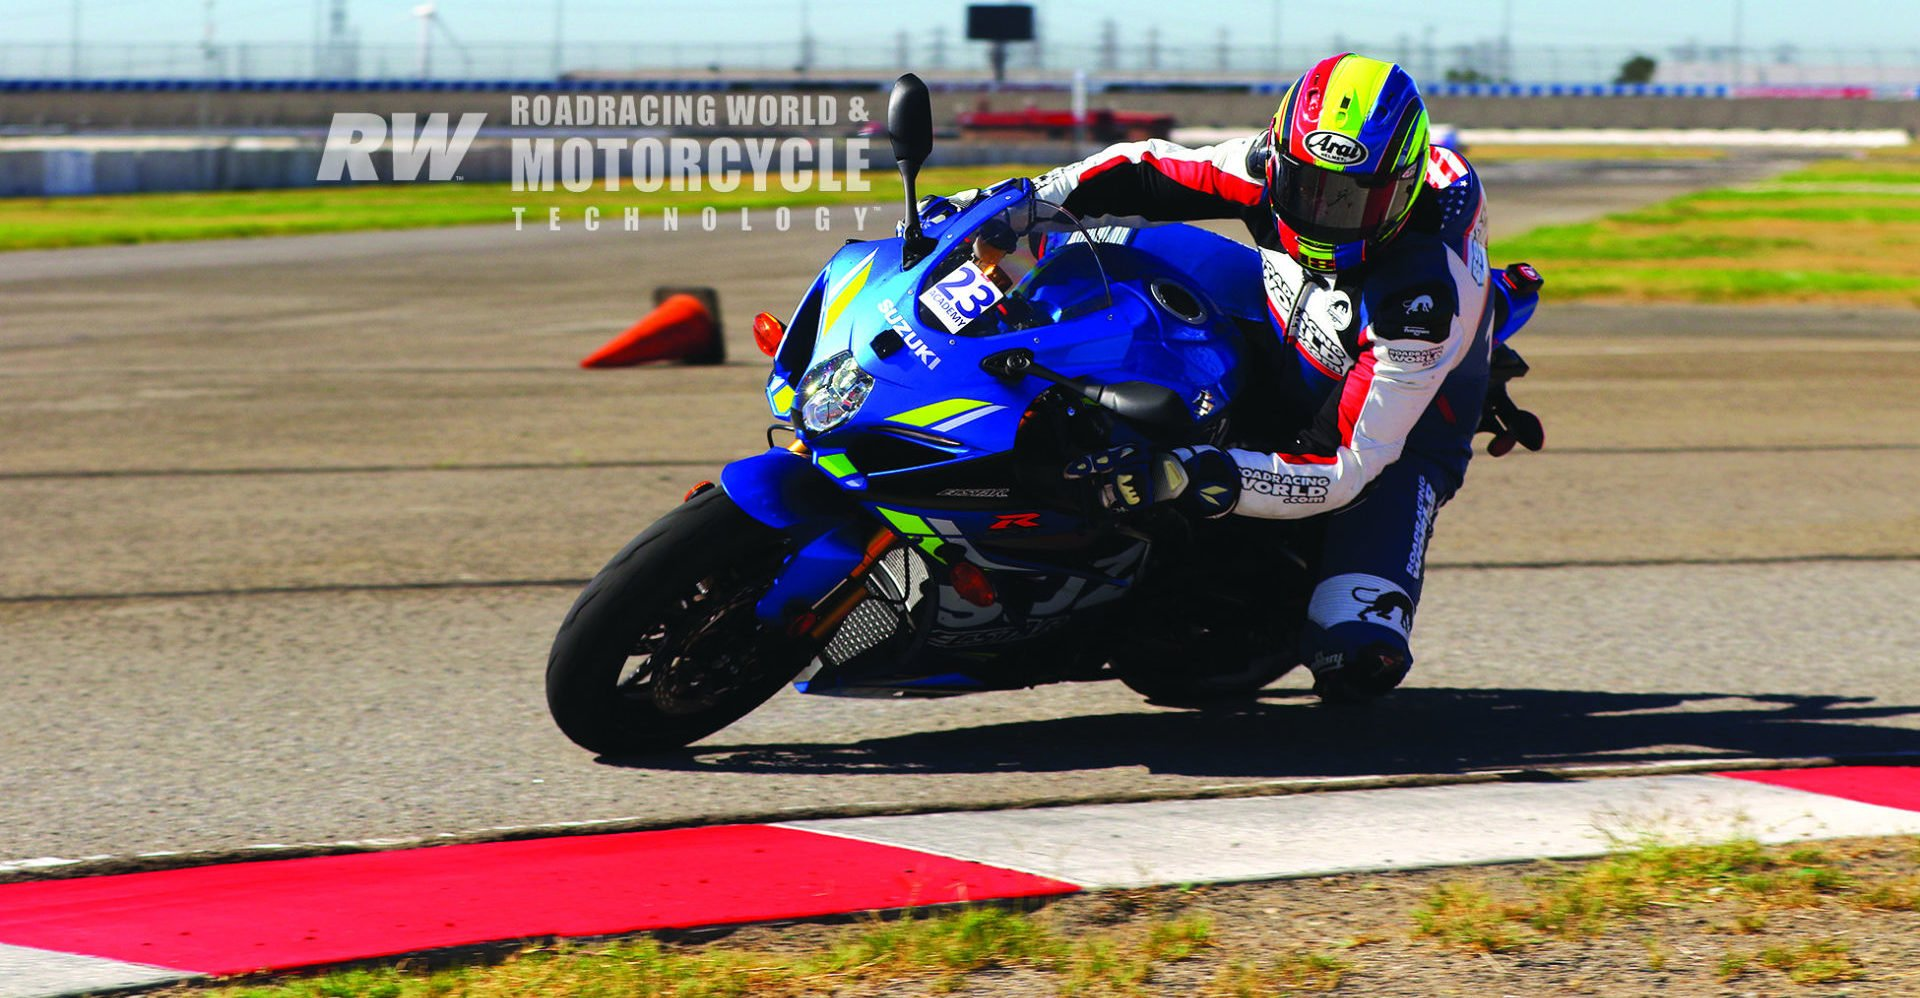 Chris Ulrich aboard a Suzuki GSX-R1000 fitted with Pirelli Diablo Supercorsa TD tires during a Fastrack Riders day at Auto Club Speedway. Photo by Caliphotography.com.